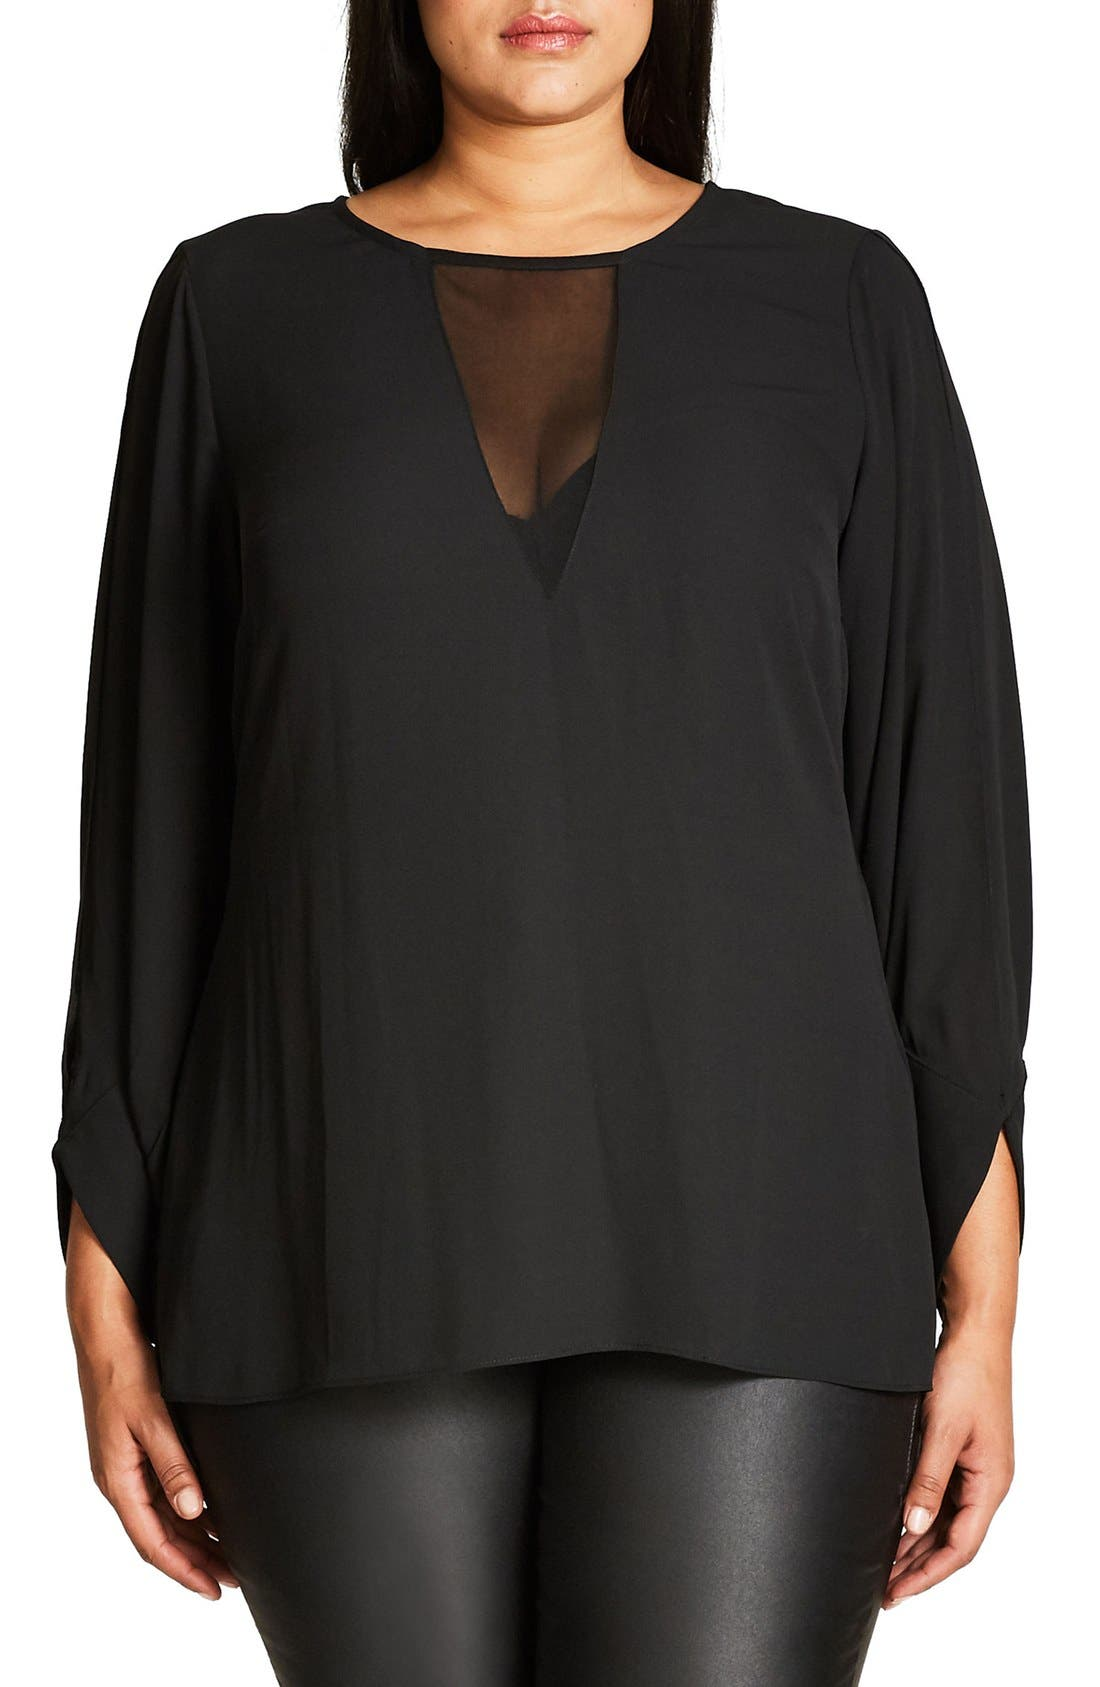 CITY CHIC Peekaboo Blouse